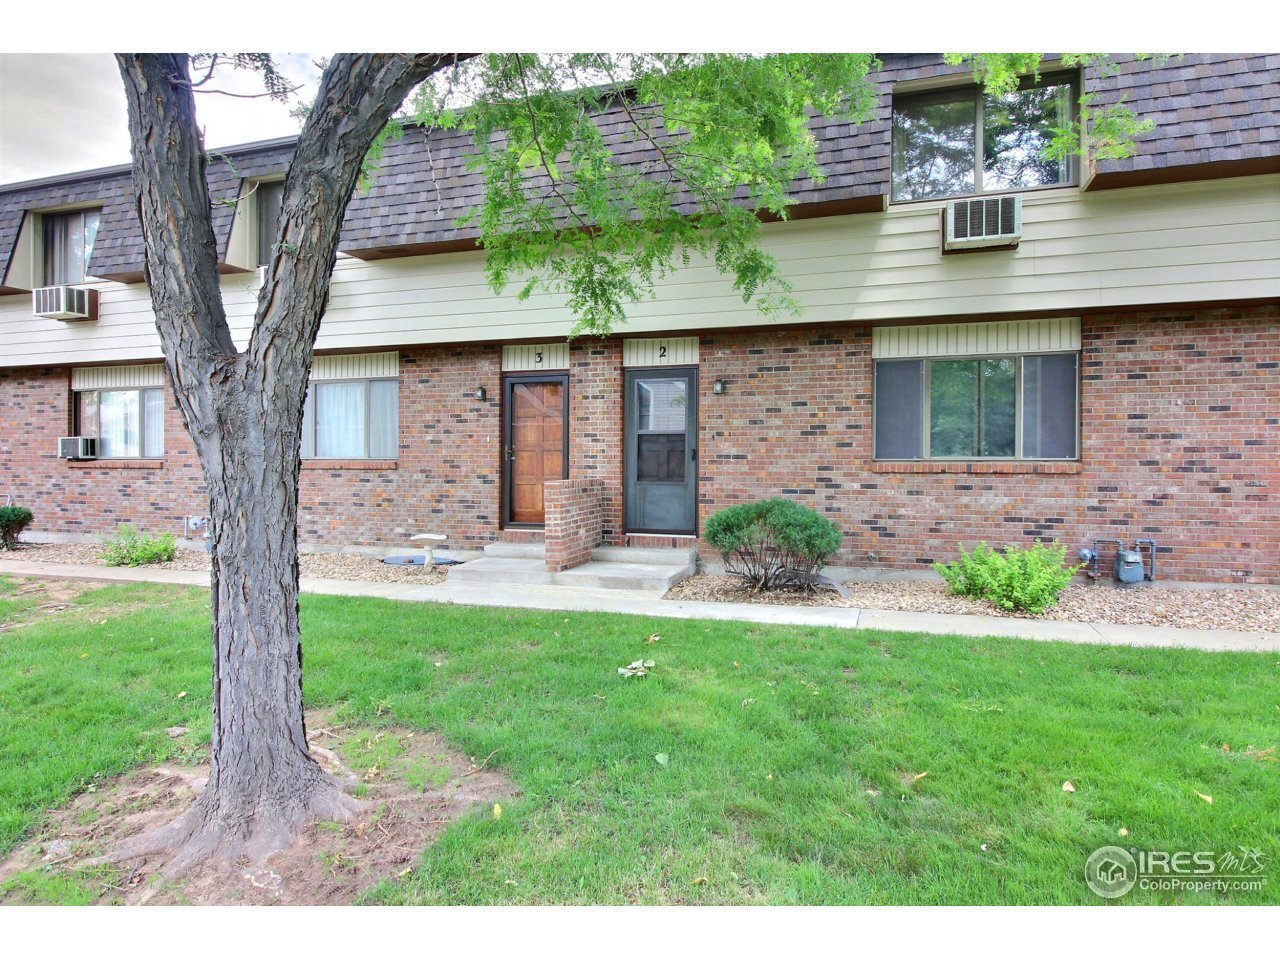 2707 19th st dr #2, greeley, co 80634 | mls# 826080 | redfin